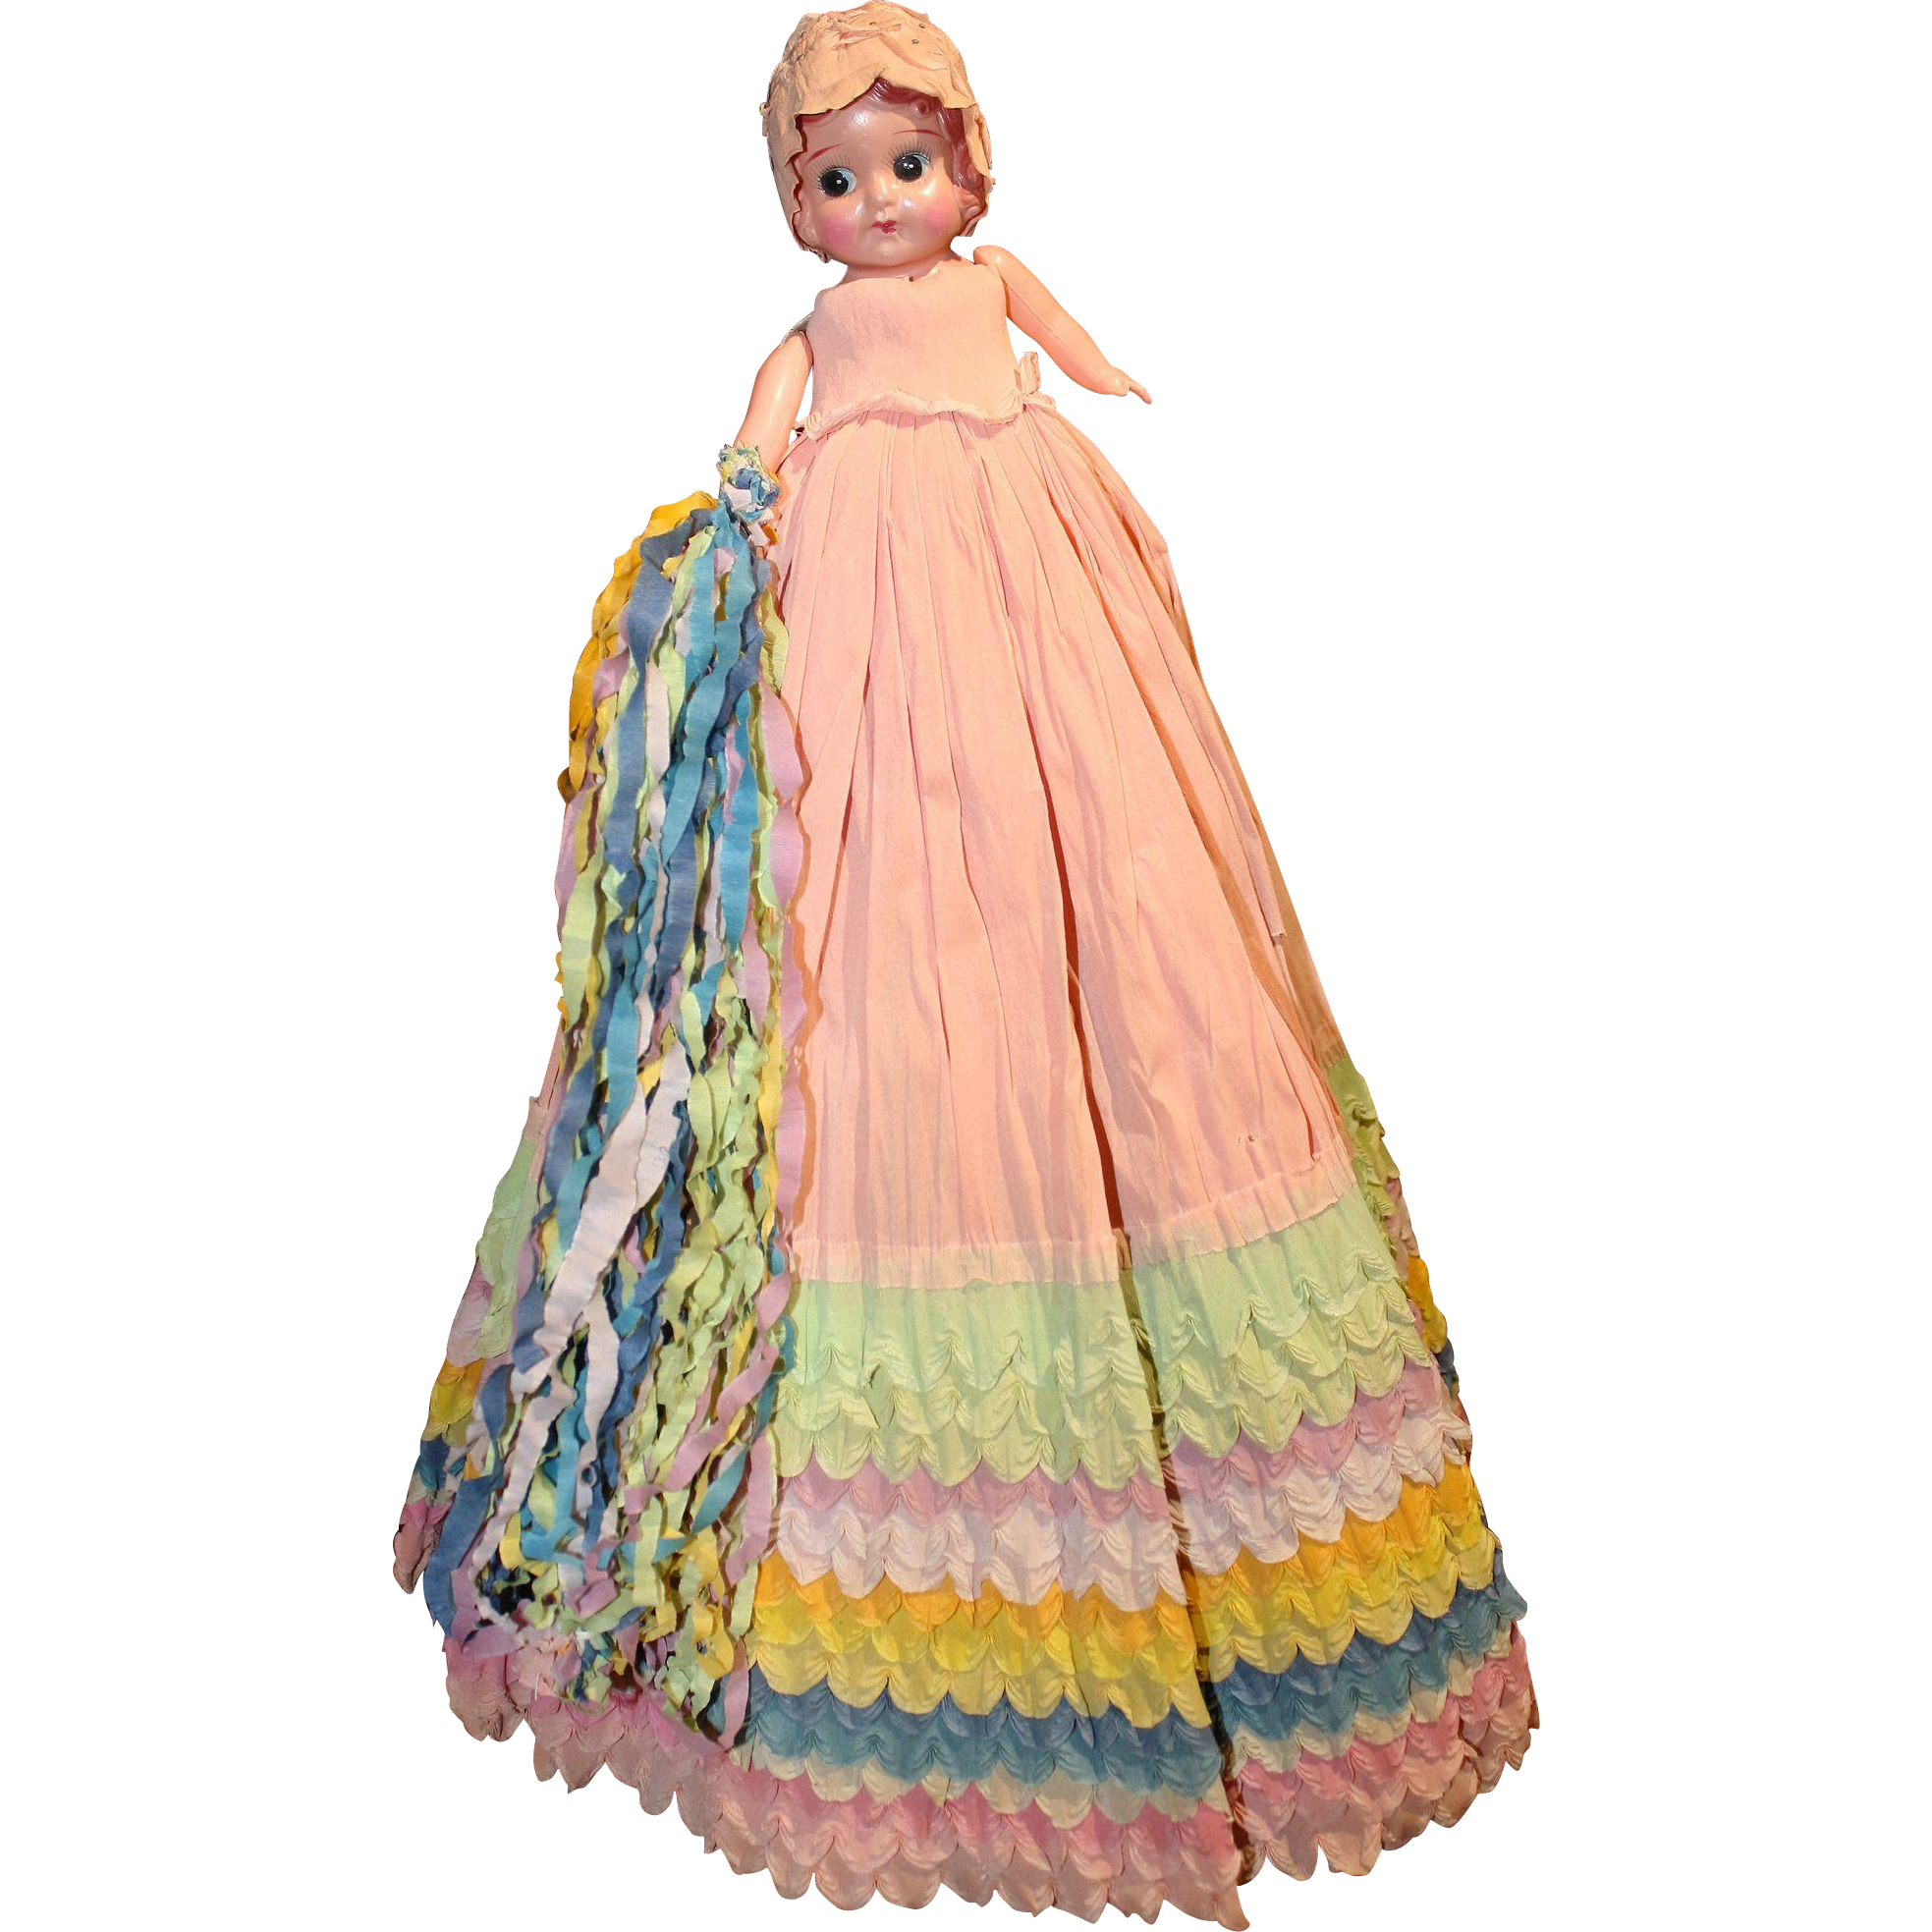 1930's Celluloid Carnival Doll with colorful crepe paper dress